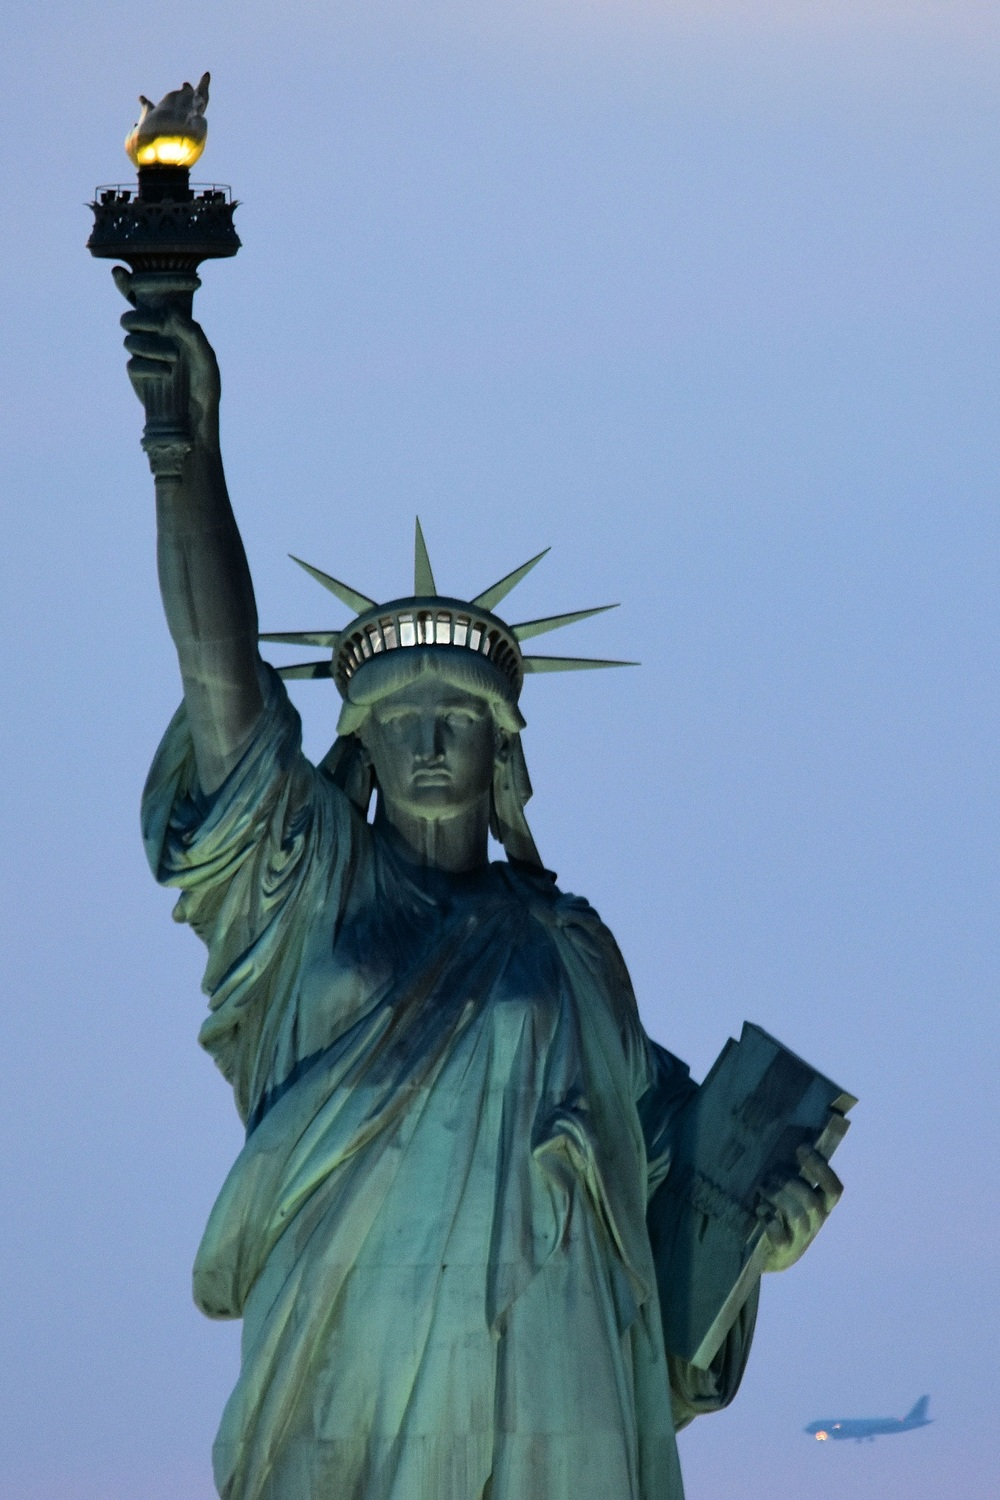 Positioned at the entrance to the harbors of New York and Jersey City at the mouth of the Hudson River, the 93 m (305 ft) tall Statue of Liberty is seen as a welcoming symbol of freedom and democracy for countless immigrants from all over the world.